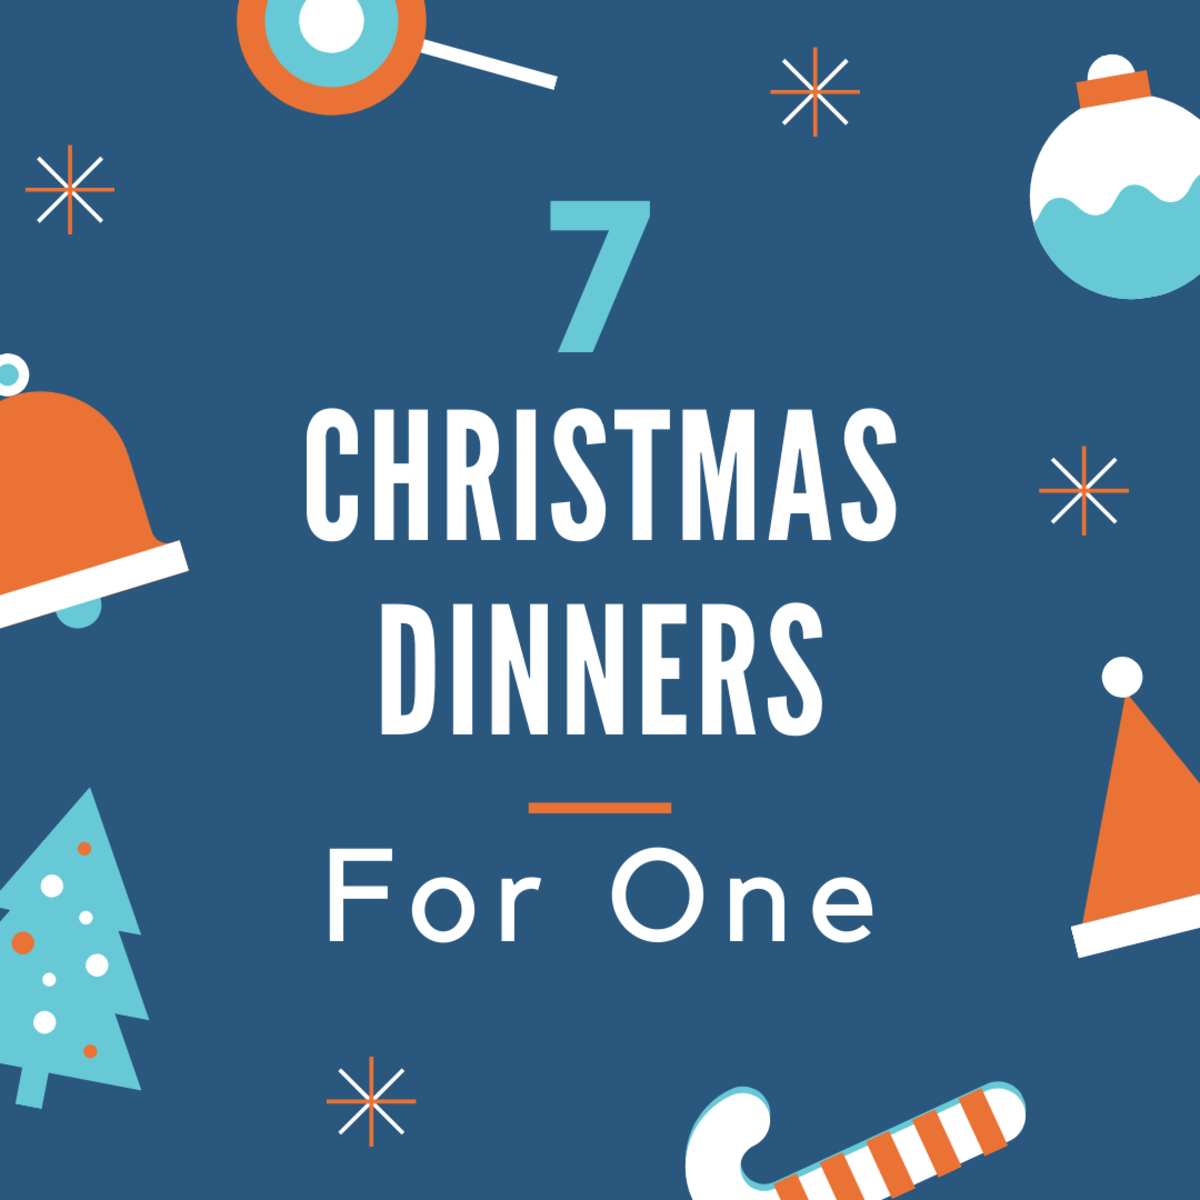 Wondering what to whip up for a solo Christmas dinner? This article has you covered.